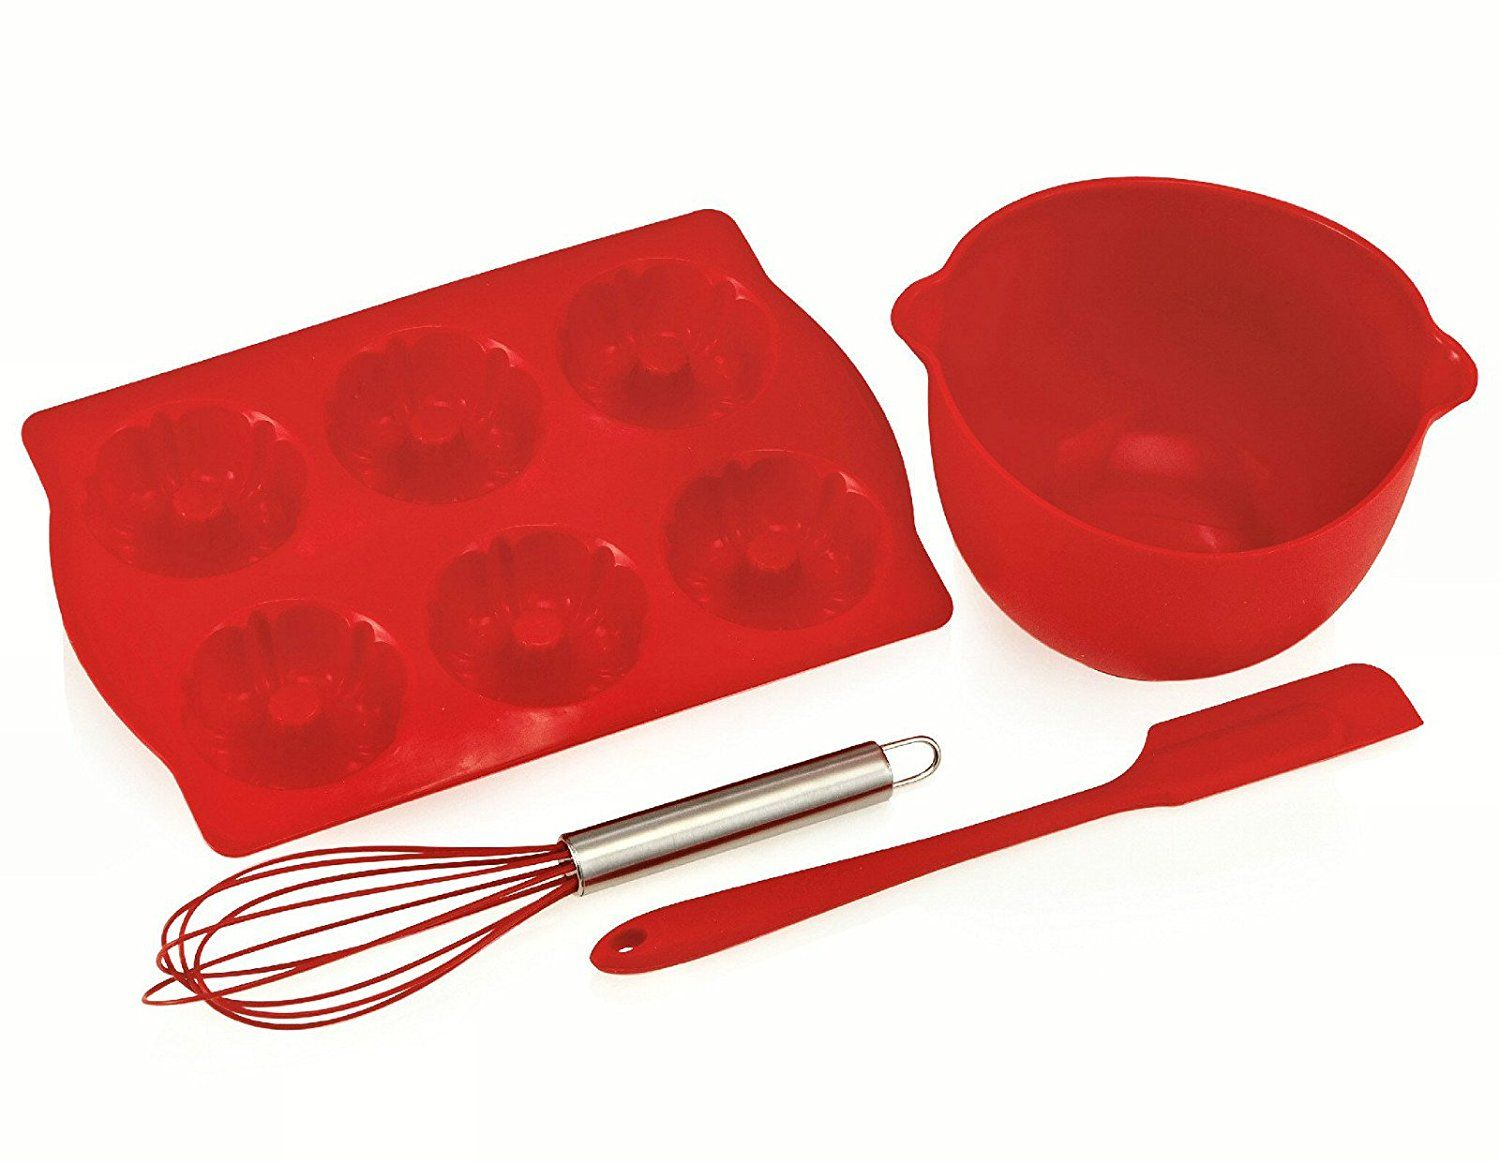 The Chefs Toolbox Junior 4 Piece Silicone Bake Set Additional